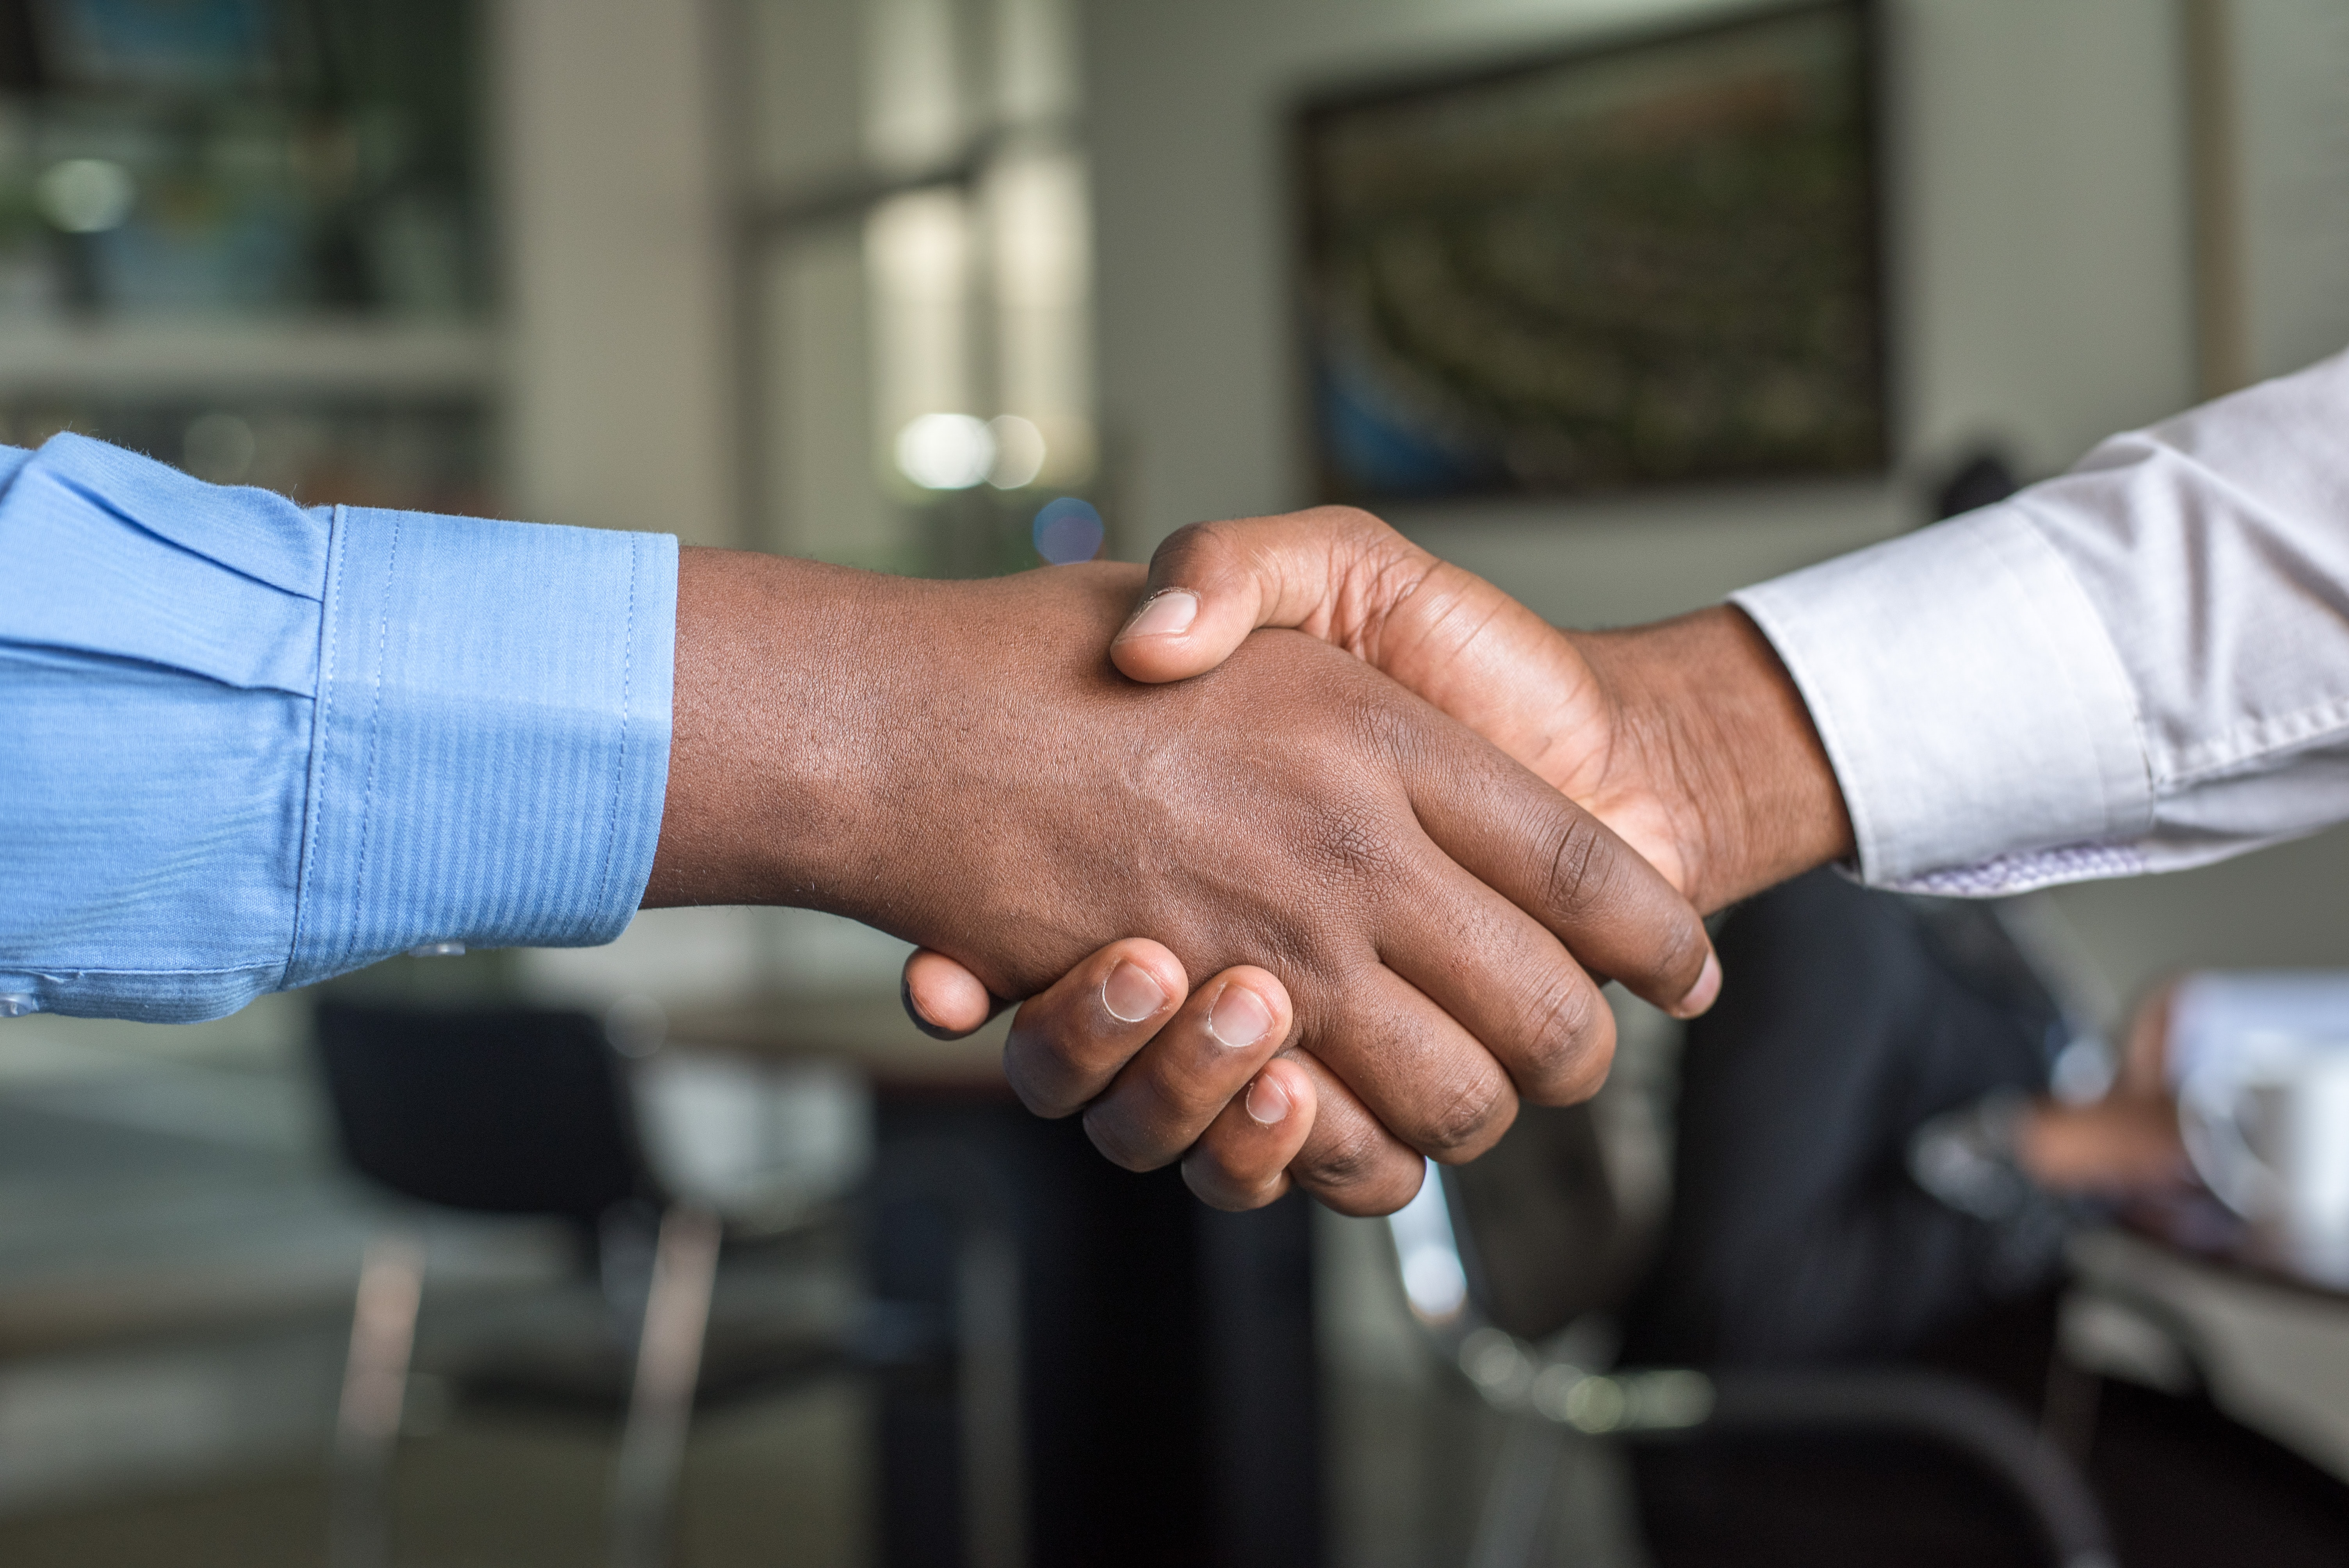 Have We Come to an Era of Virtual Handshakes Only?